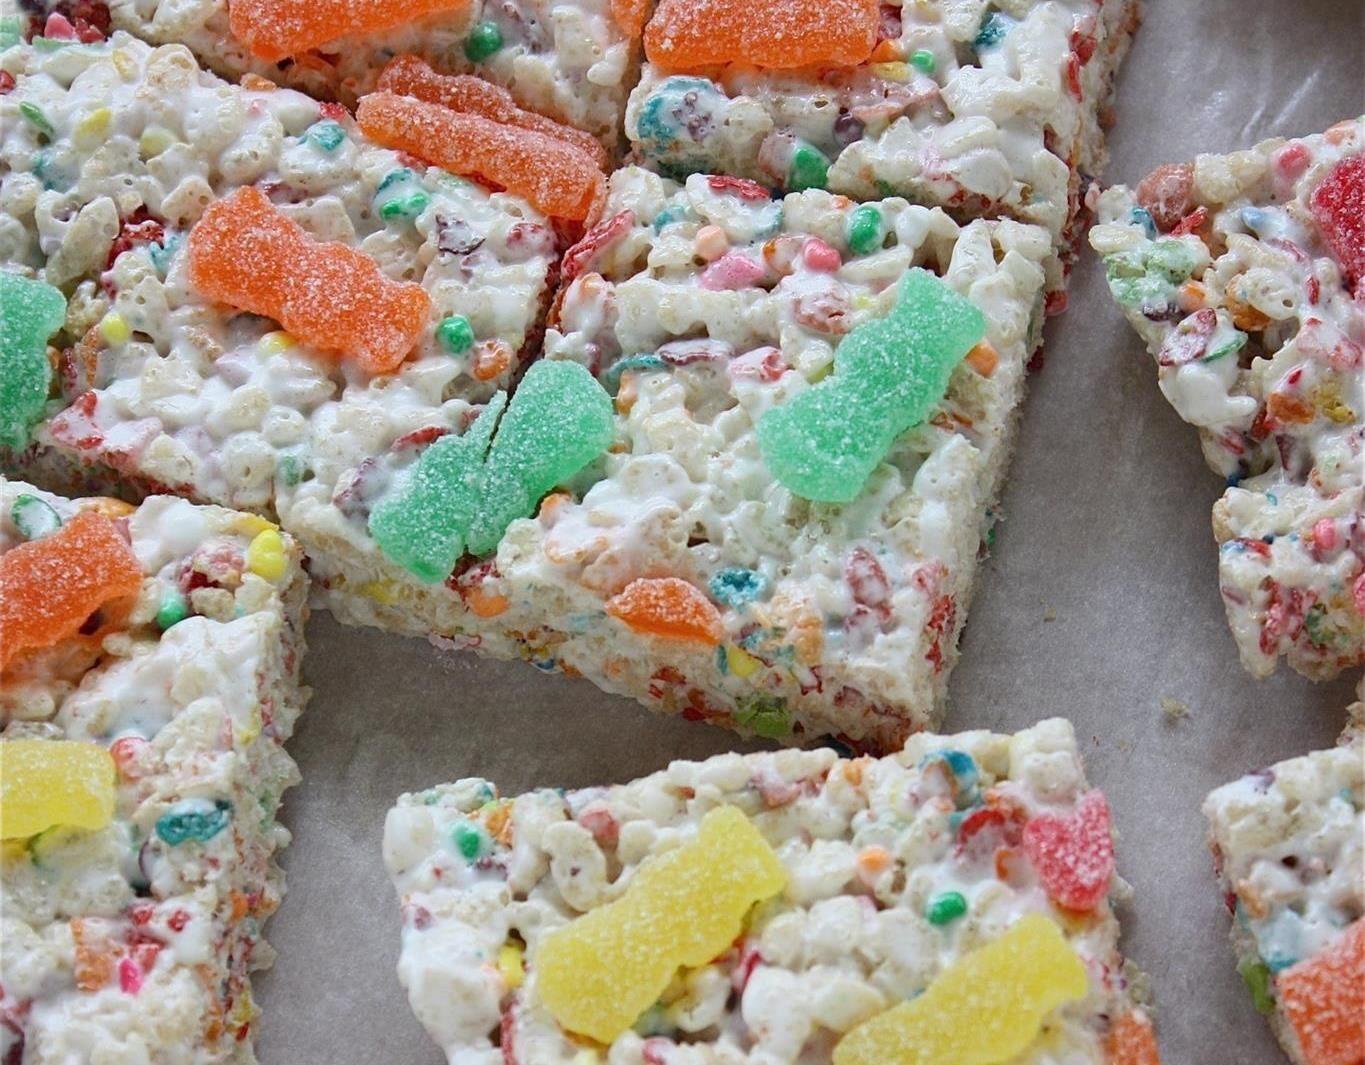 Sour Patch Recipes Your Kids'll Go Crazy For